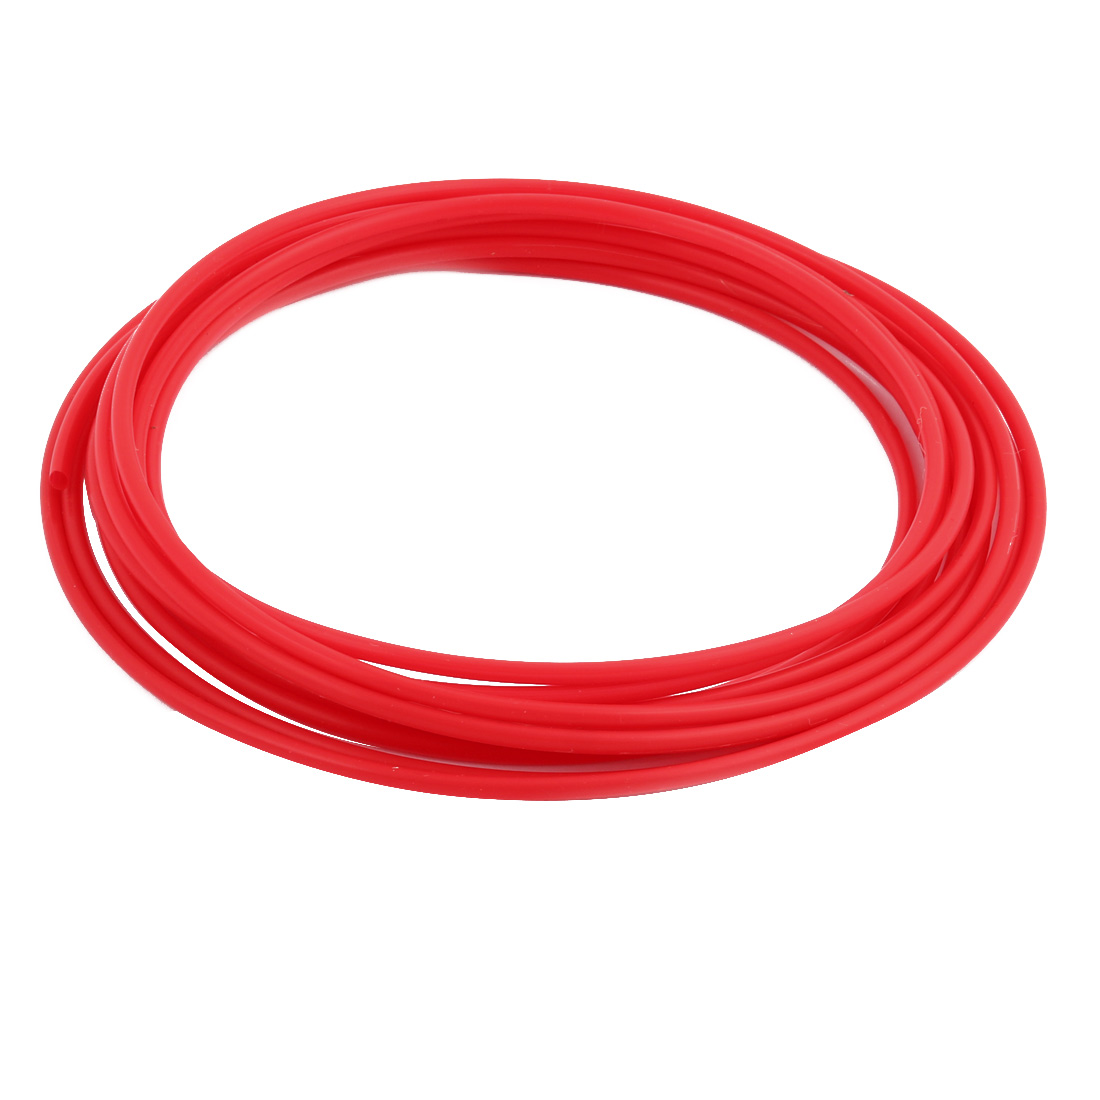 3mmx3.4mm PTFE Resistant High Temperature Red Tubing 5 Meters 16.4Ft